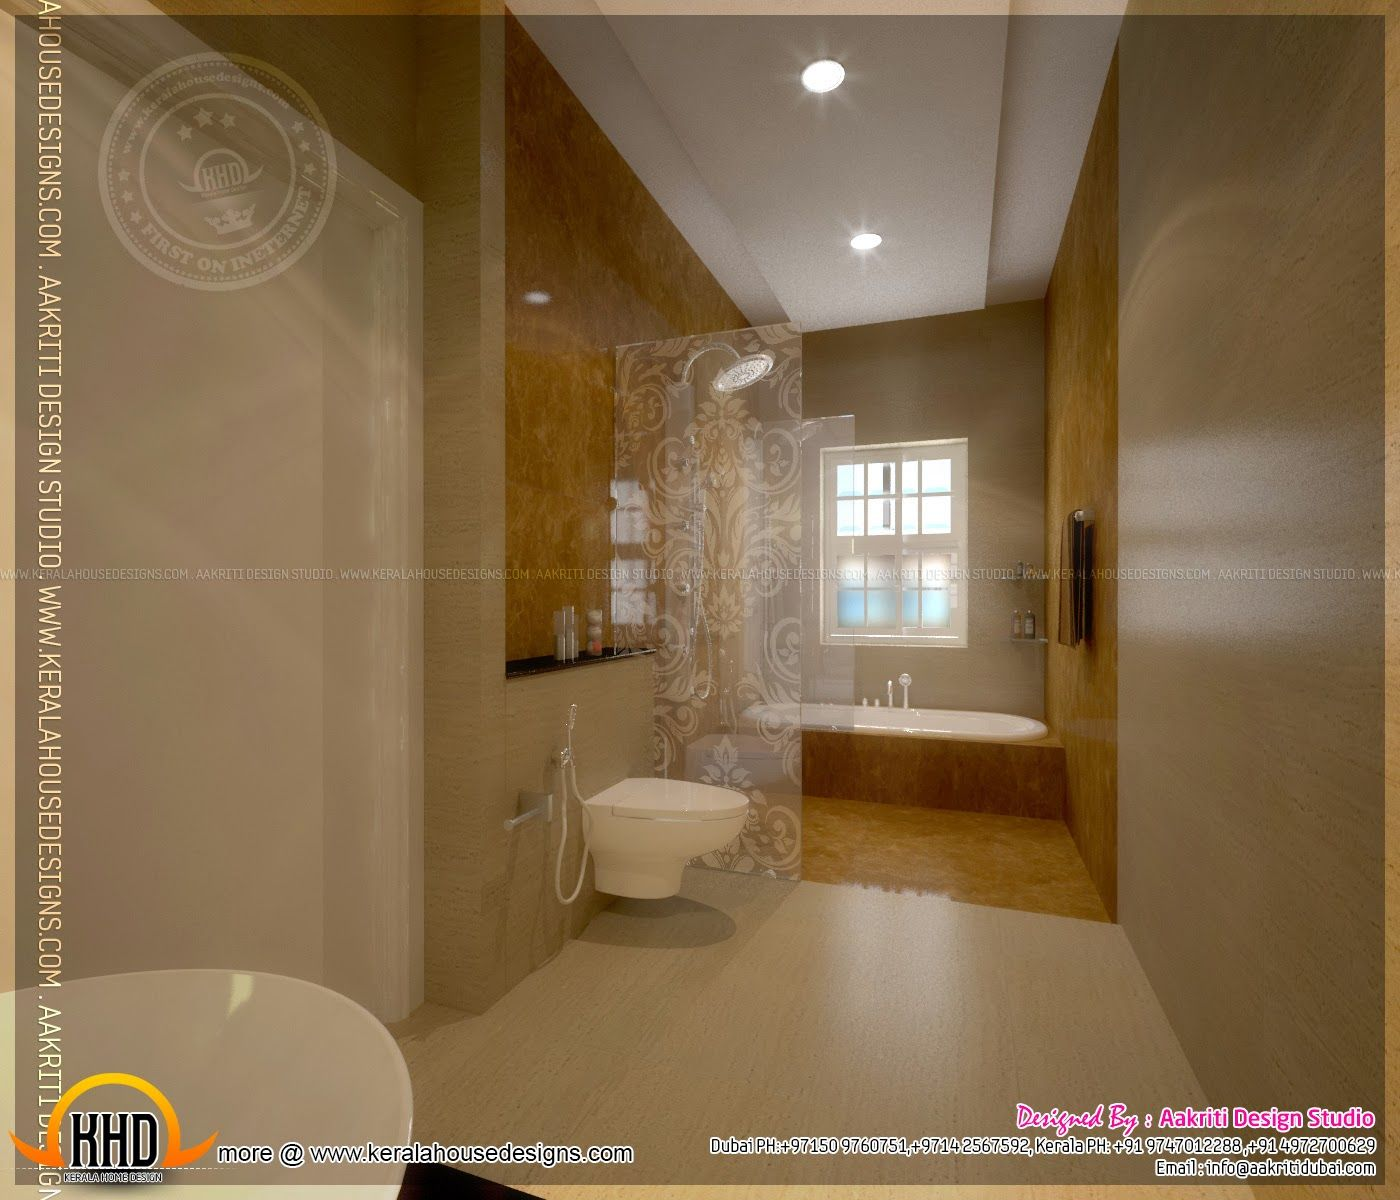 latest posts under bathroom images - Bathroom Design Ideas In Kerala